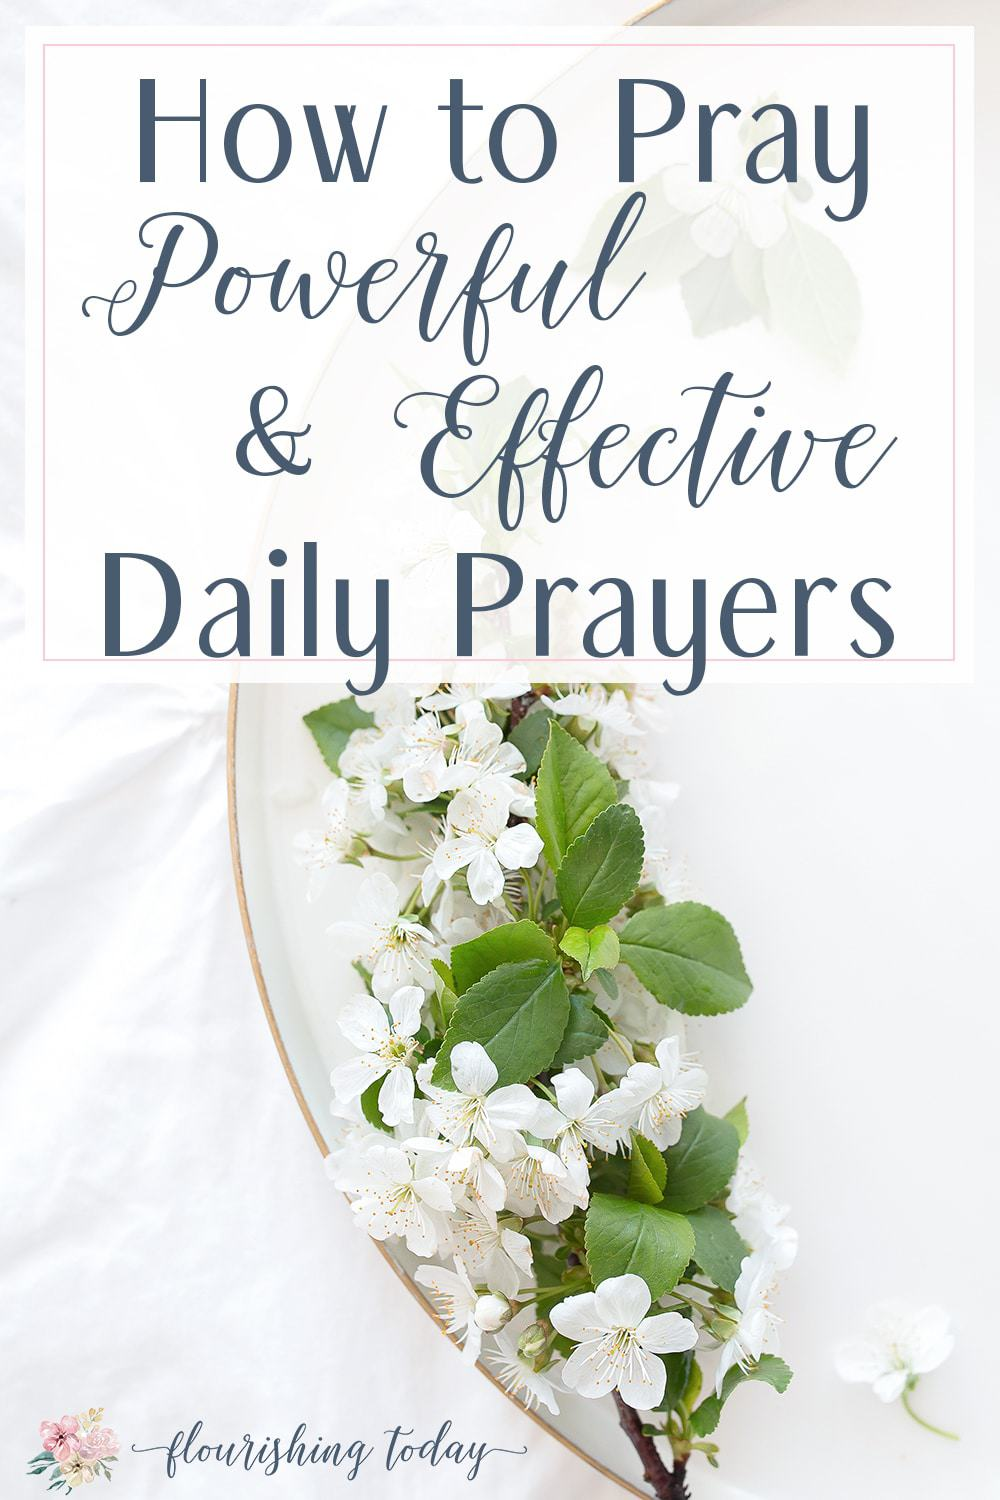 Do you ever feel like you don't know what to pray? Or maybe you feel like your prayers are useless? Here are tips for how to pray powerful daily prayers. #prayer #prayers #dailyprayers #powerfulprayers